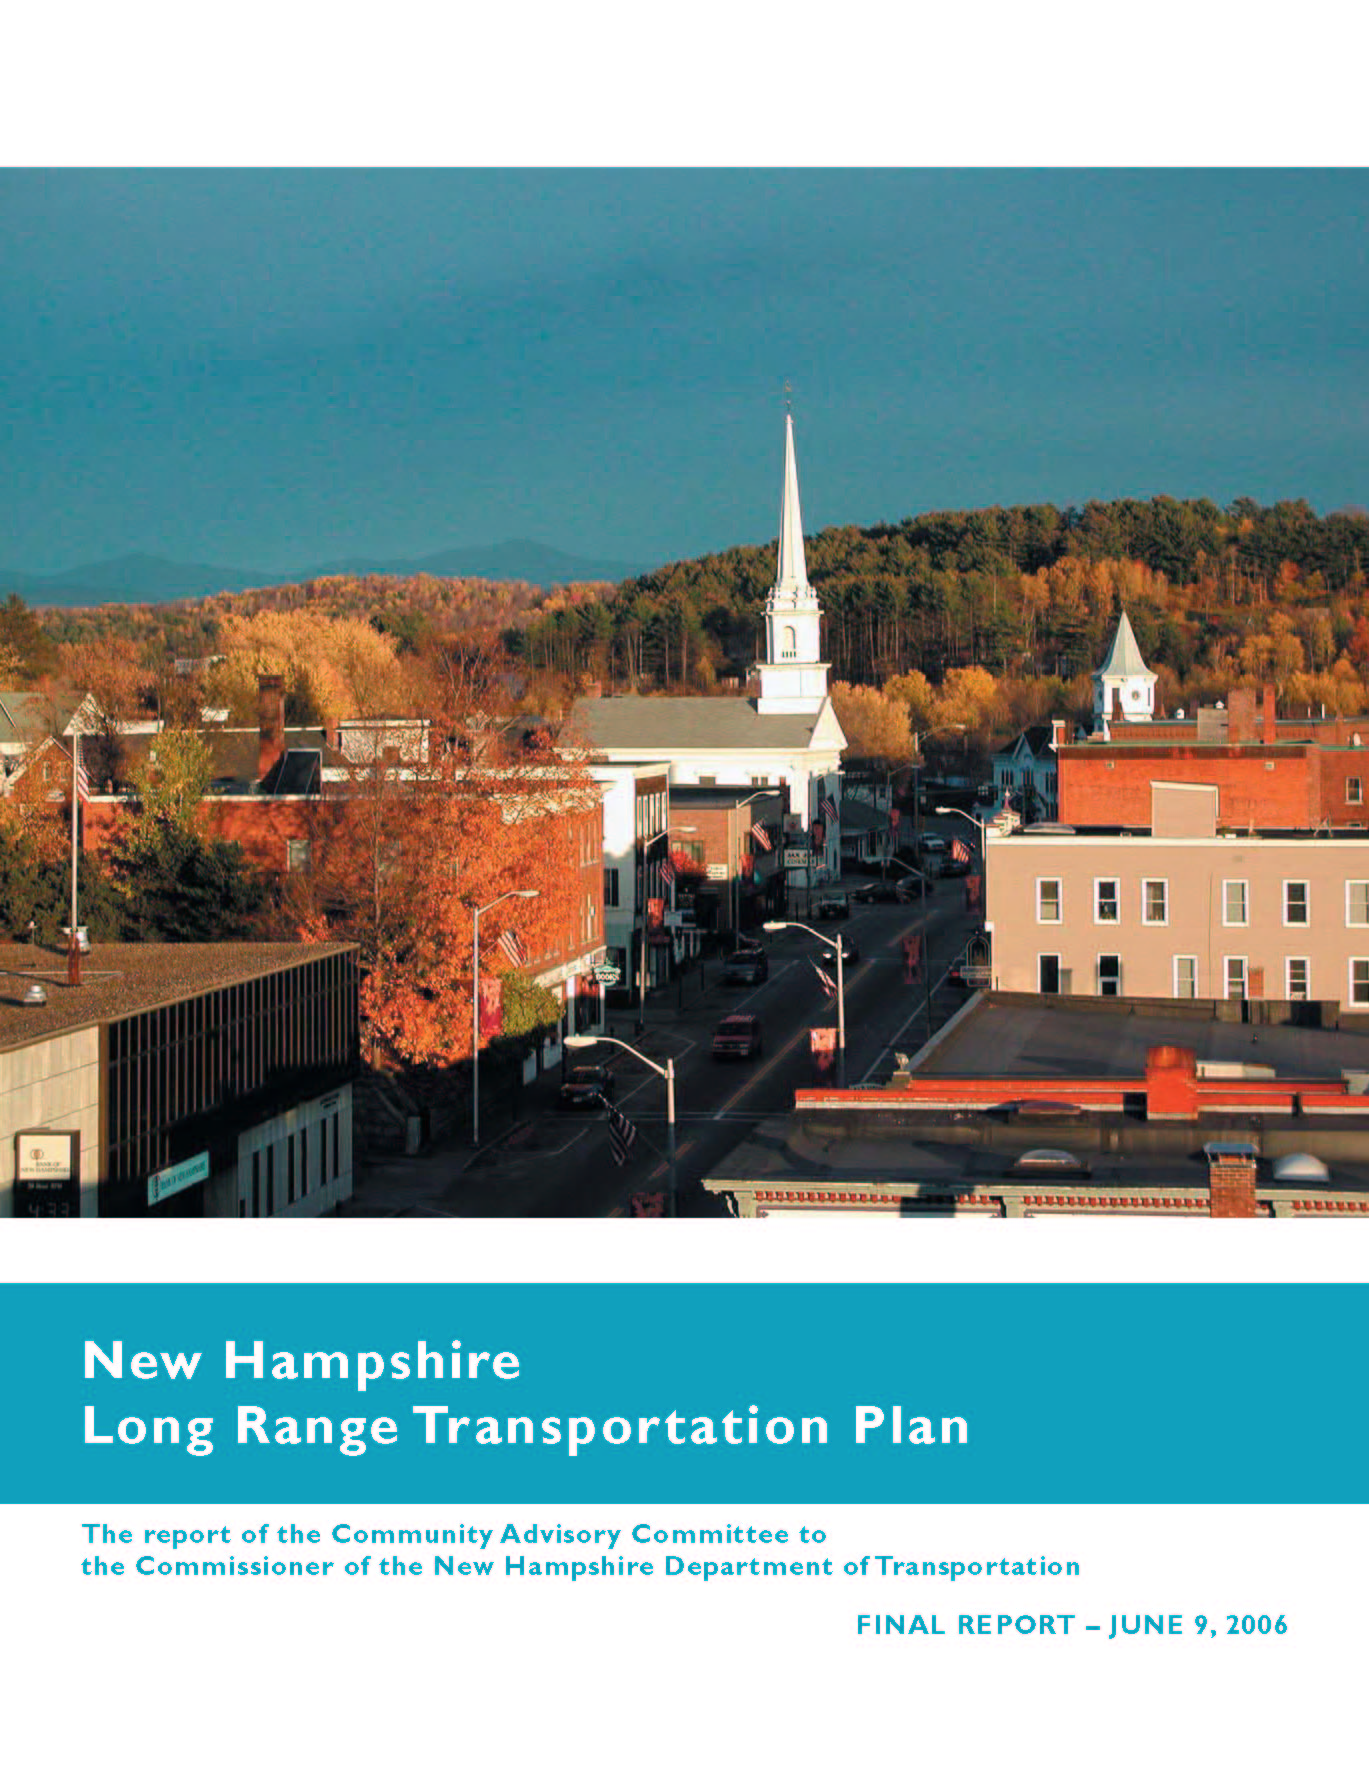 New Hampshire Long Range Transportation Plan